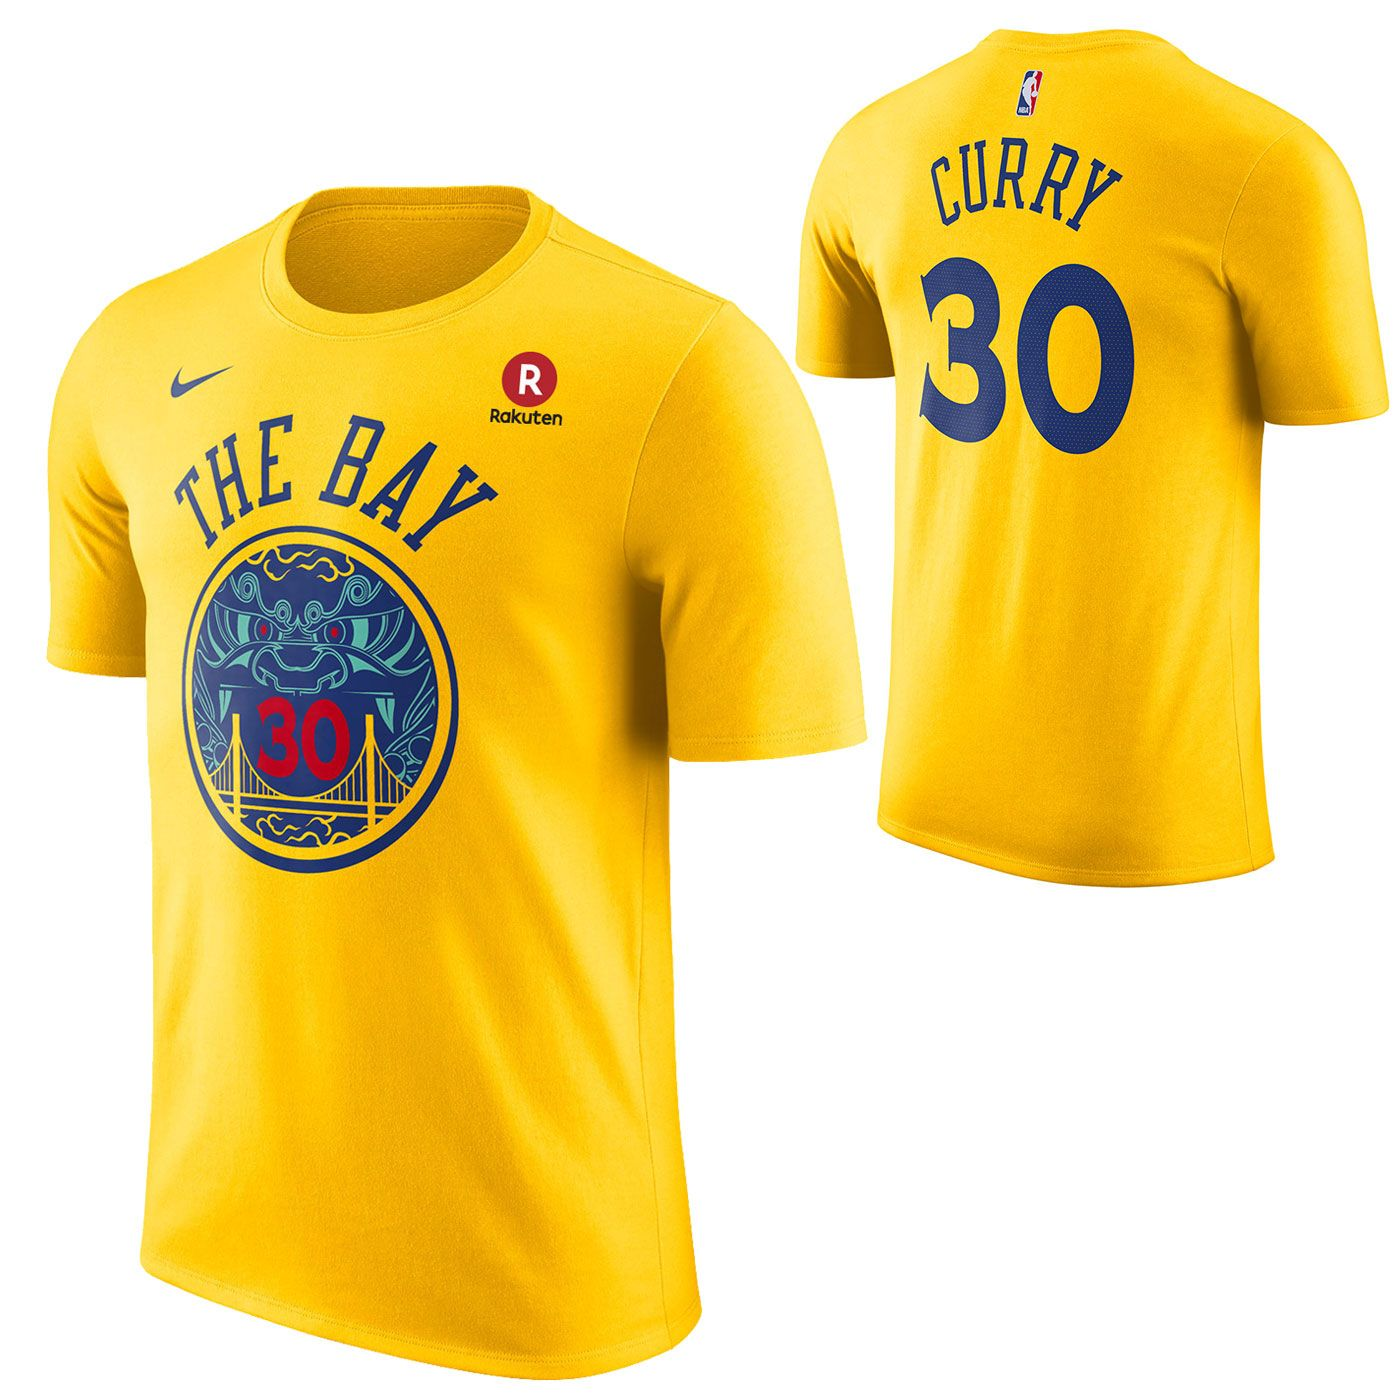 b85d582c0 Golden State Warriors Nike Dri-FIT Men s City Edition Stephen Curry  30  Chinese Heritage Game Time Name   Number Tee - Gold